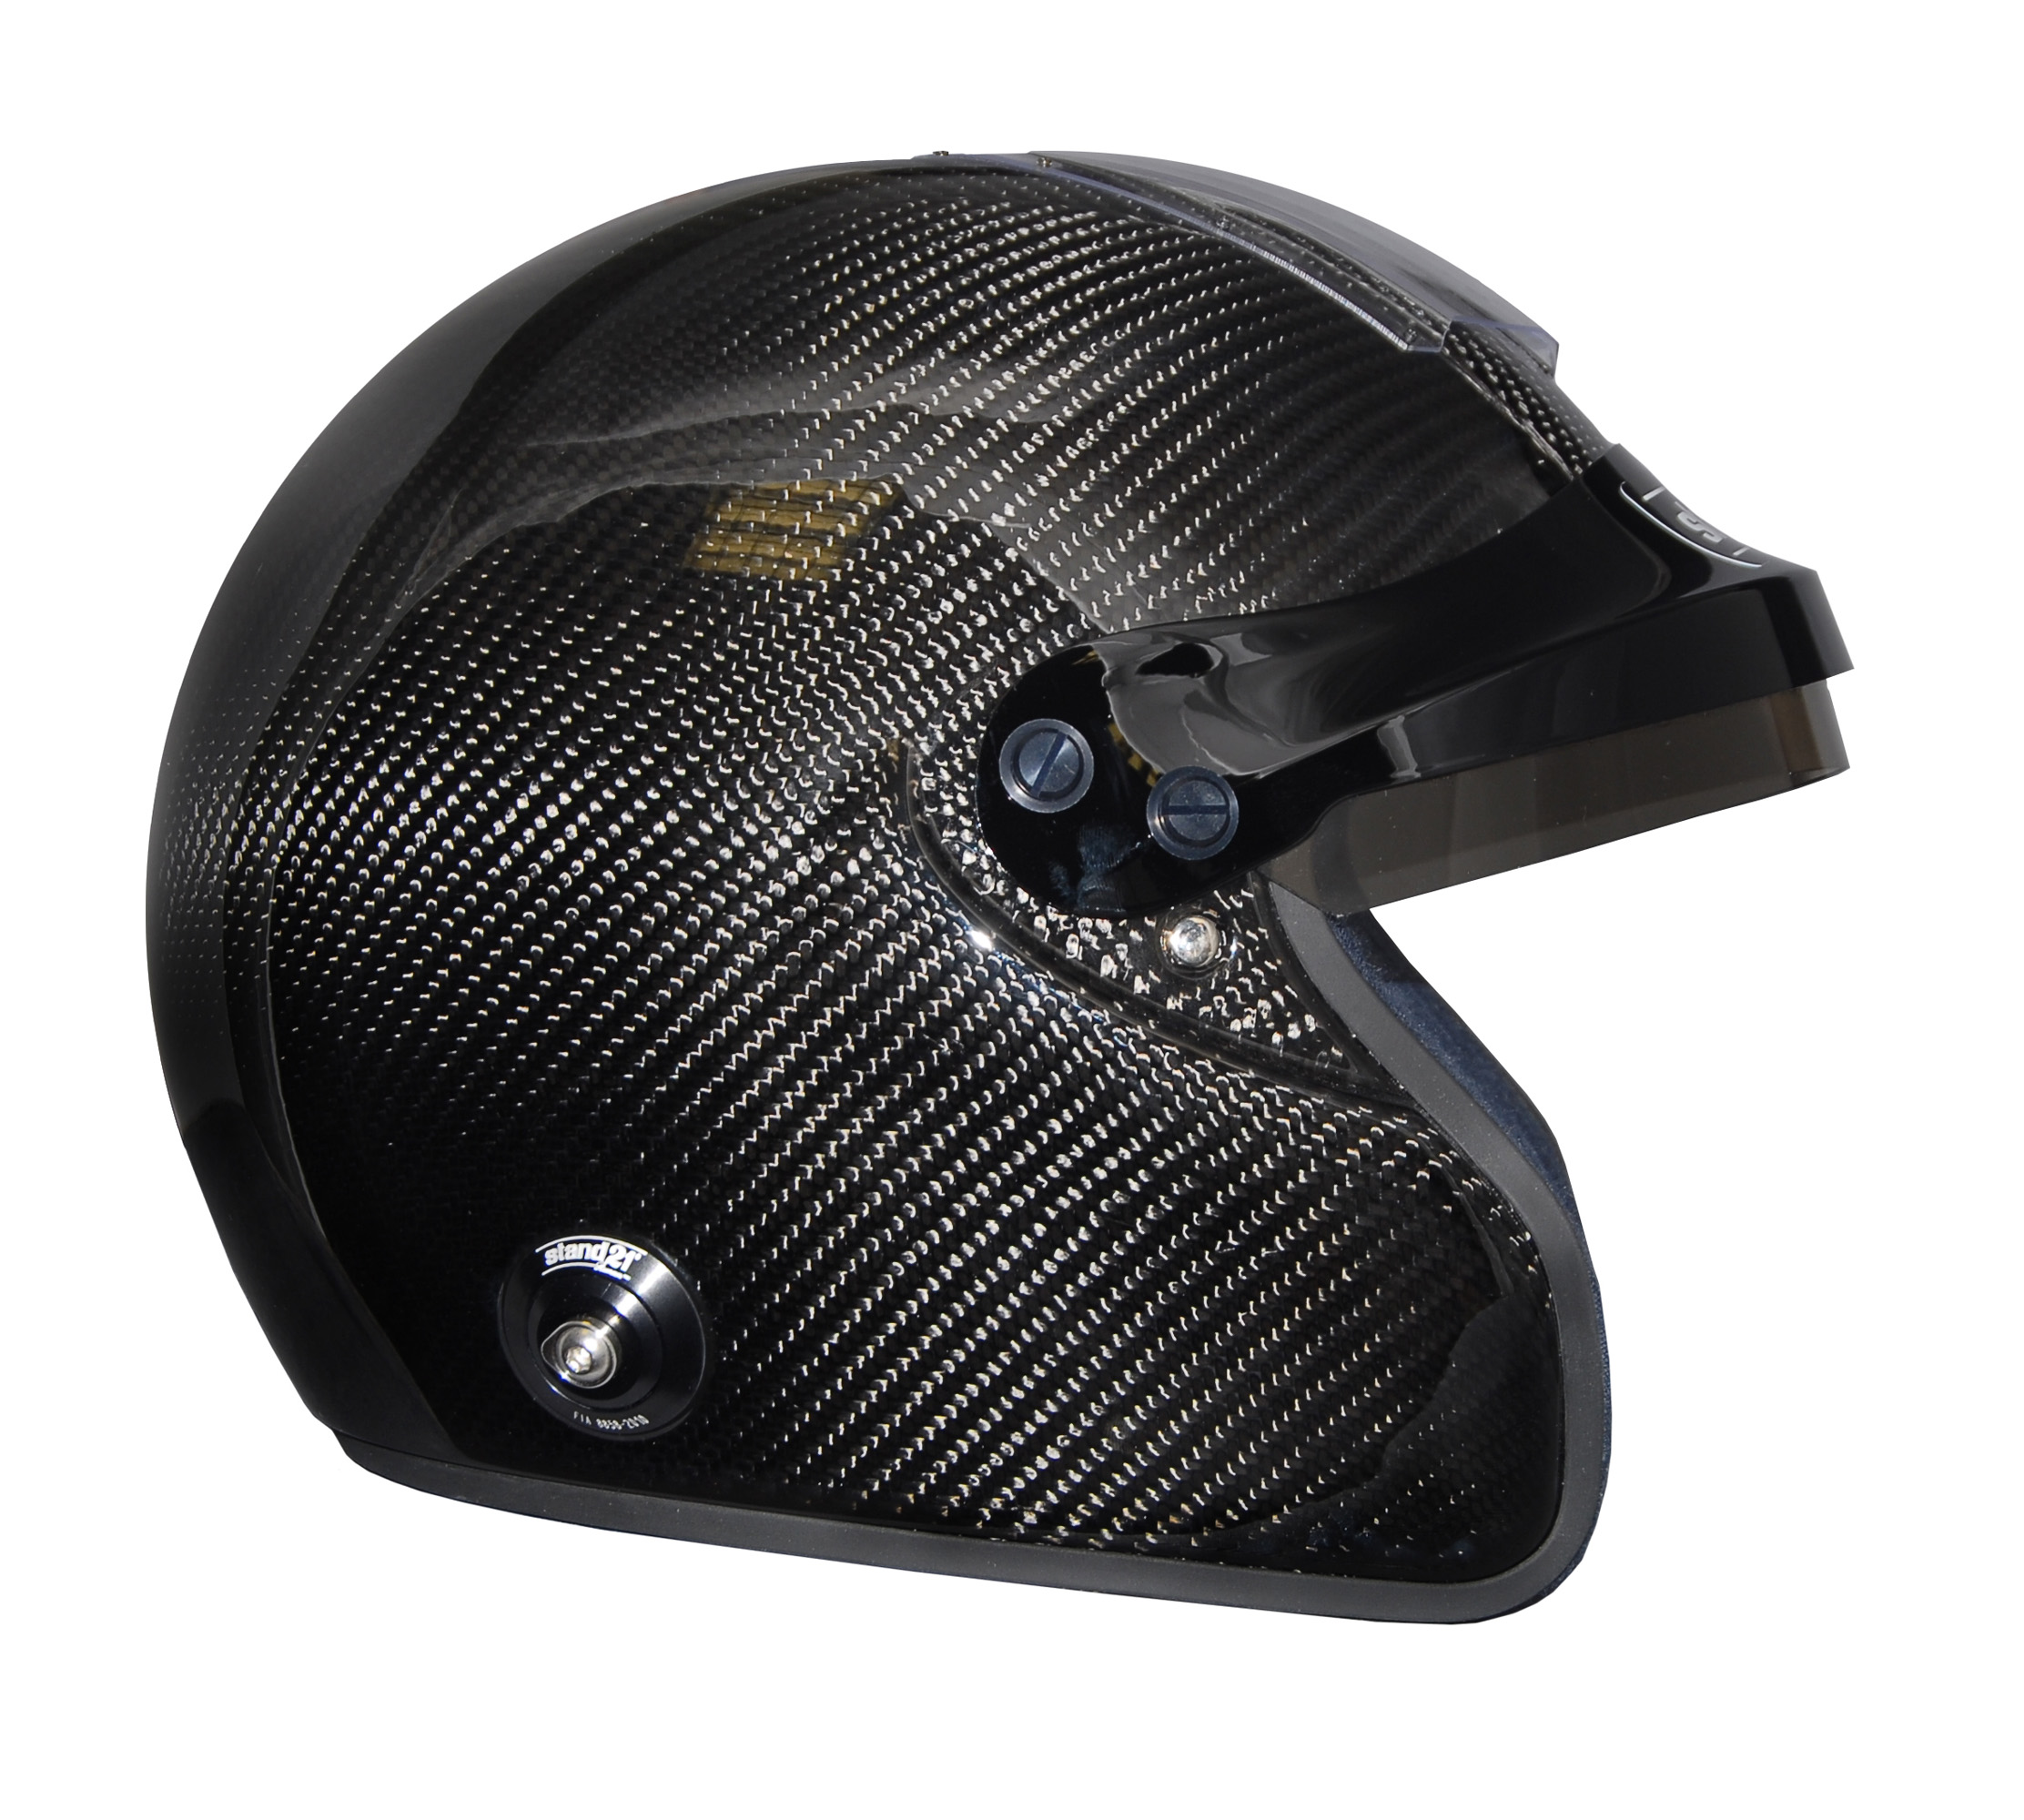 Stock IVOS Open Face Double Duty helmet with peak